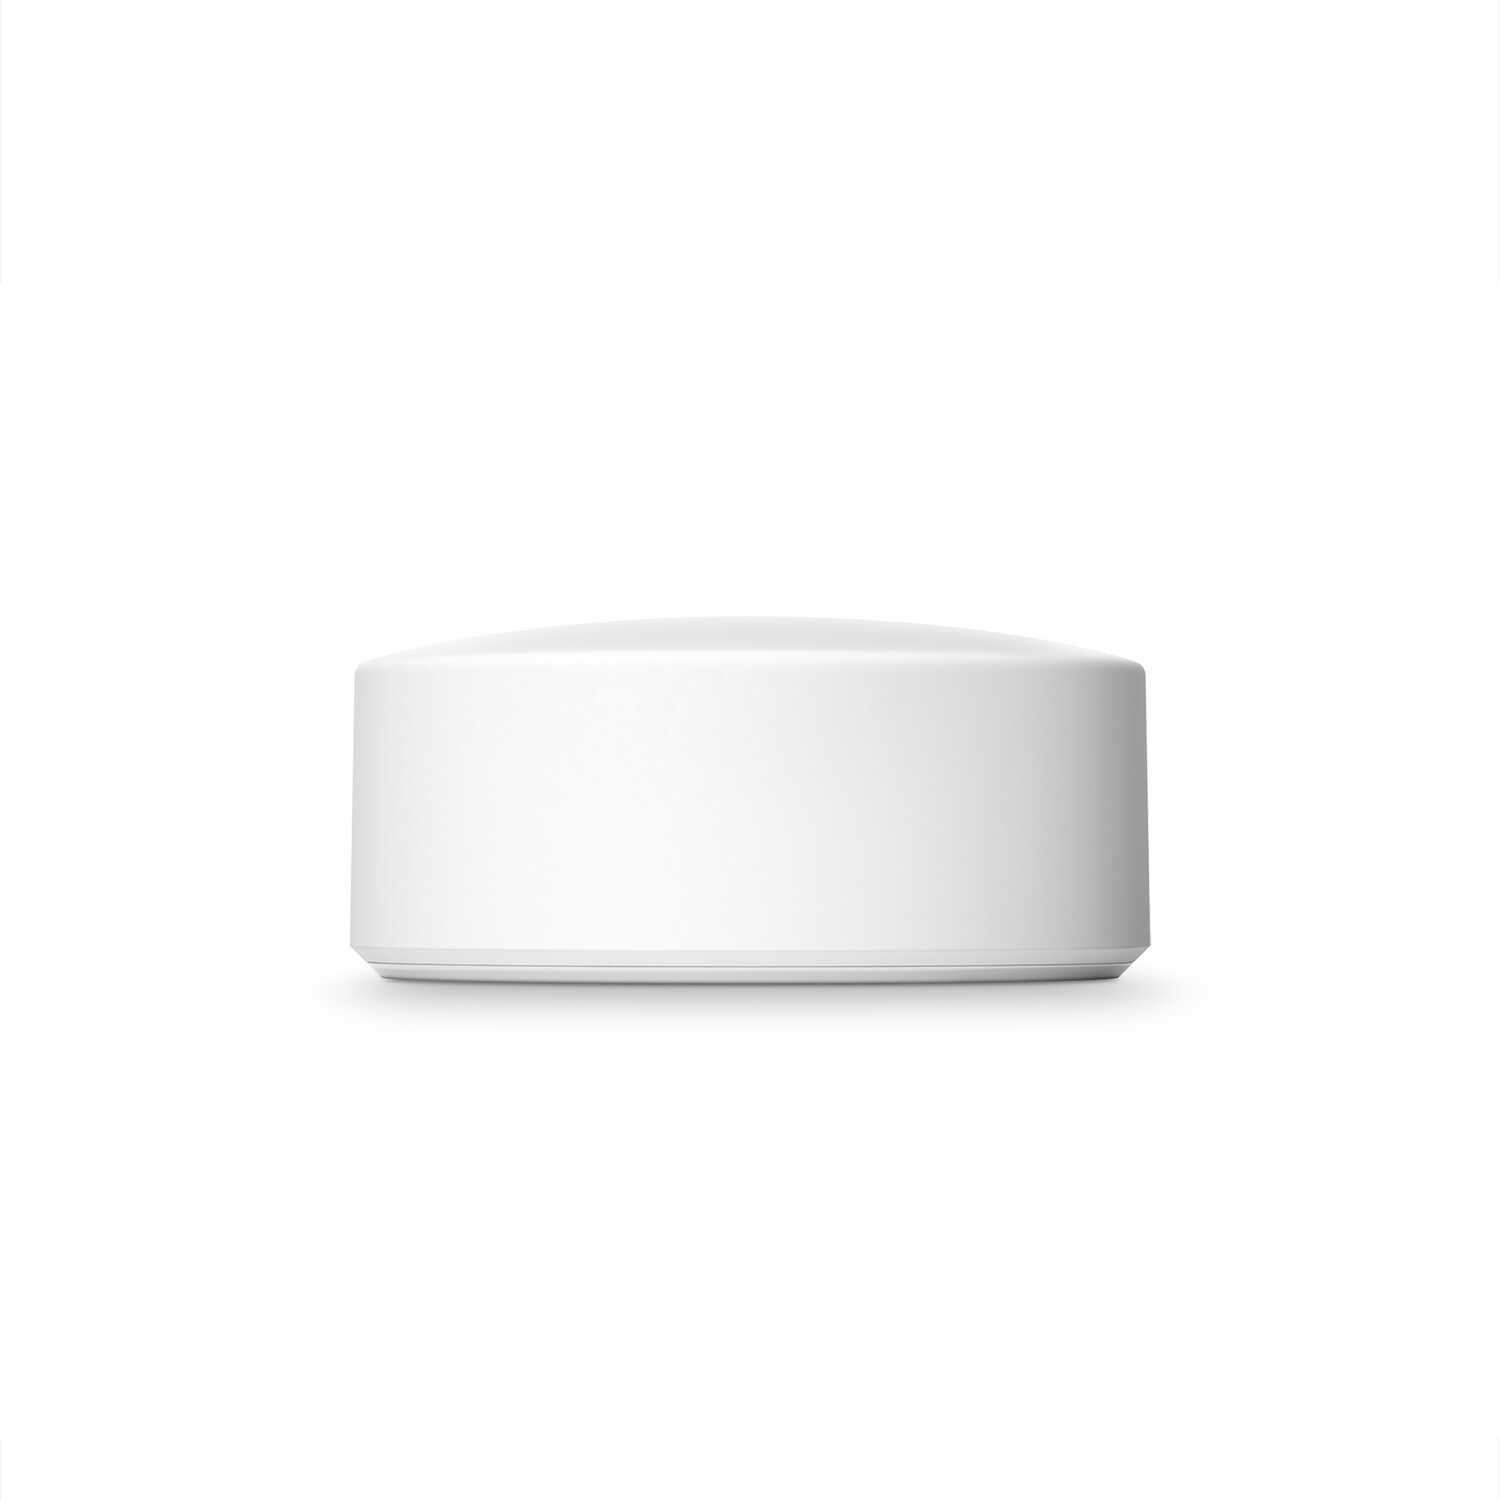 Google  Nest  Temperature Sensor  Plastic  White